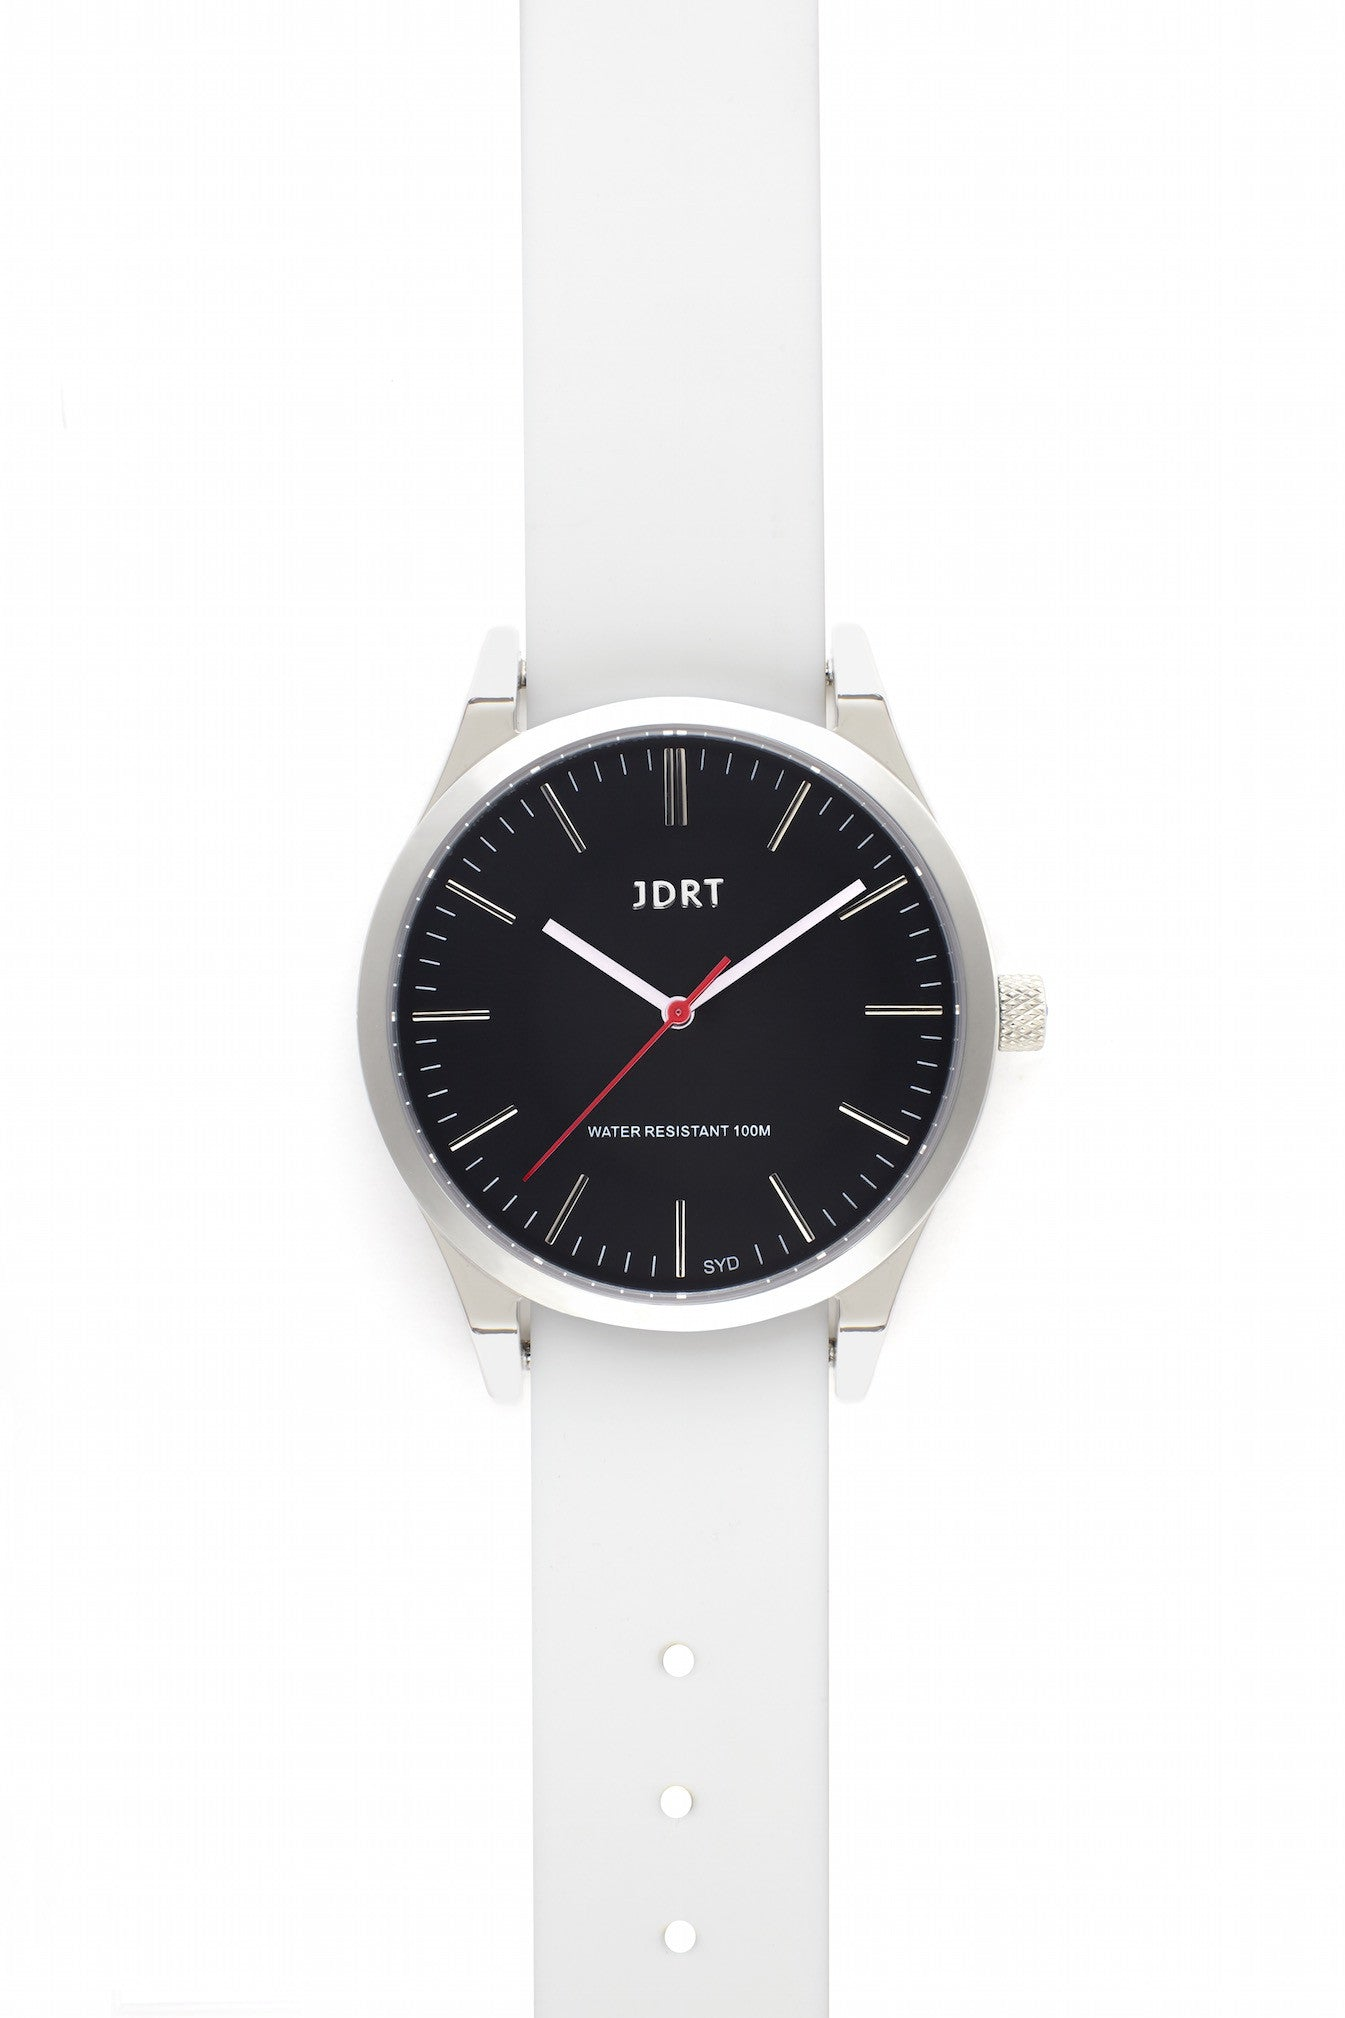 Jet Face with Antique White Silicone Watch Band